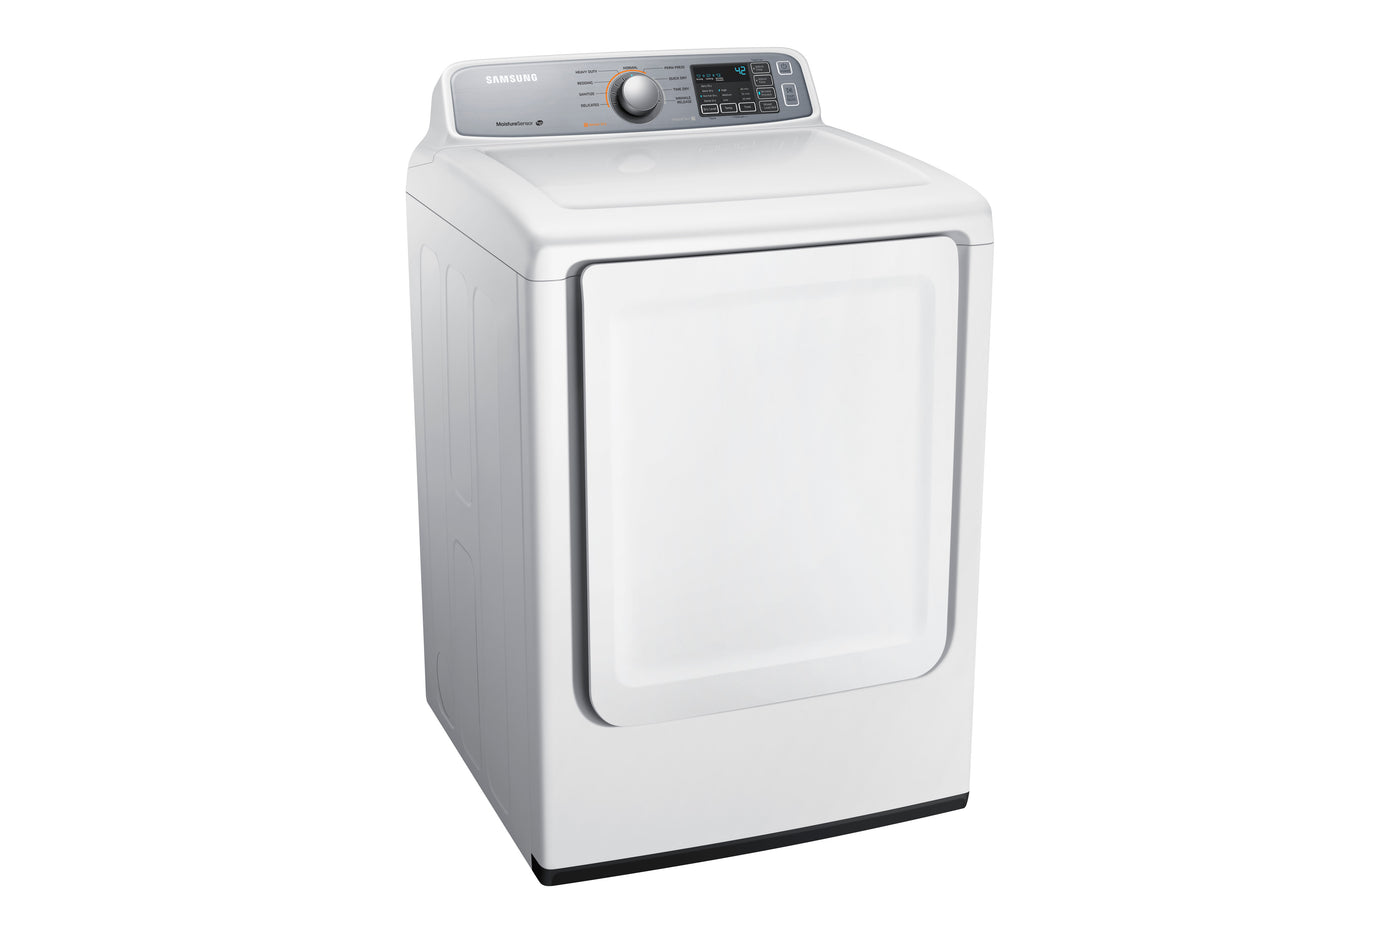 Samsung White Electric Dryer (7 4 Cu Ft) - DV45H7000EW